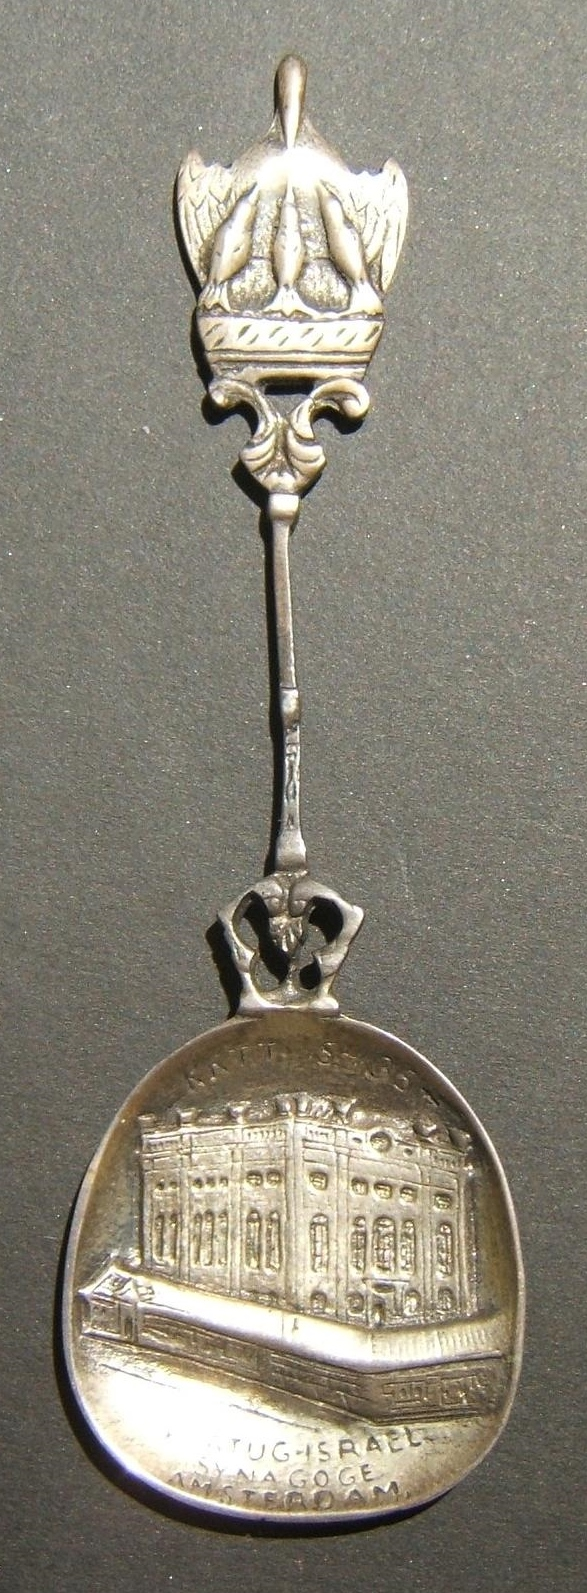 Netherlands: cast silver spoon commemorating 250th Anniversary of Portuguese -Jewish Synagogue, 1925; by E.L. Molenberg & Zoon (Groningen); size: 37.75 x 123mm; weight: 17.45g.